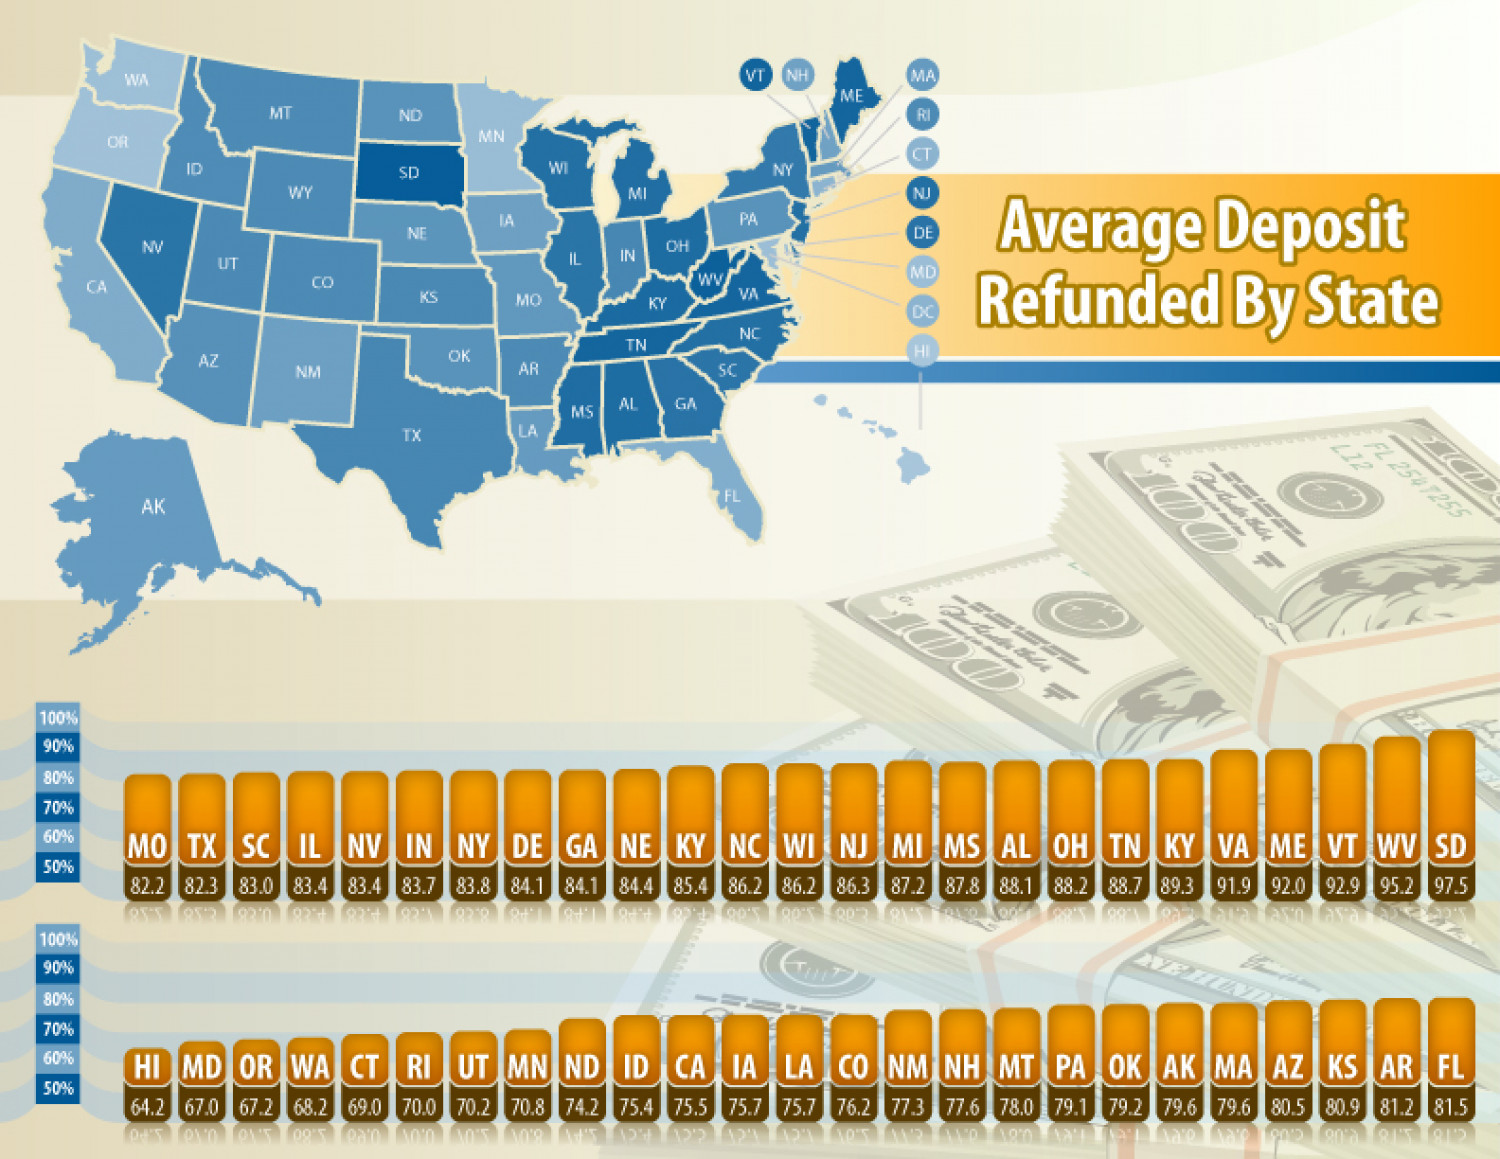 Average Deposit Refunded by State Infographic